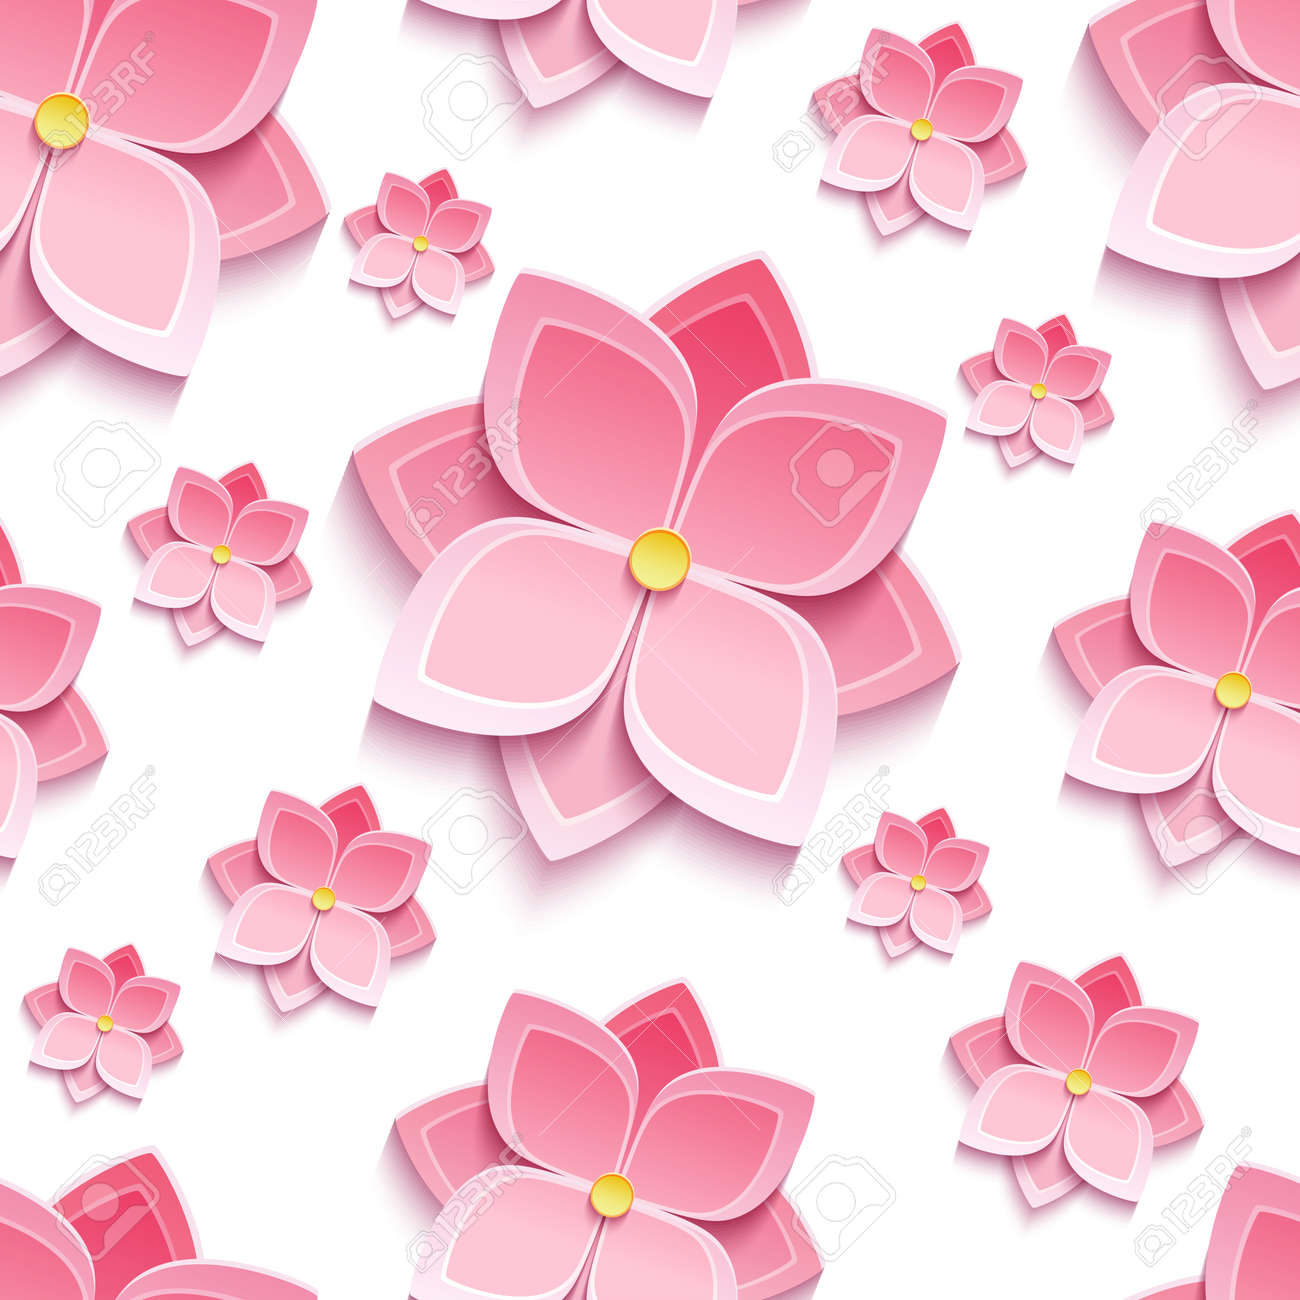 Trendy Background Seamless Pattern With Decorative Pink 3d Flower